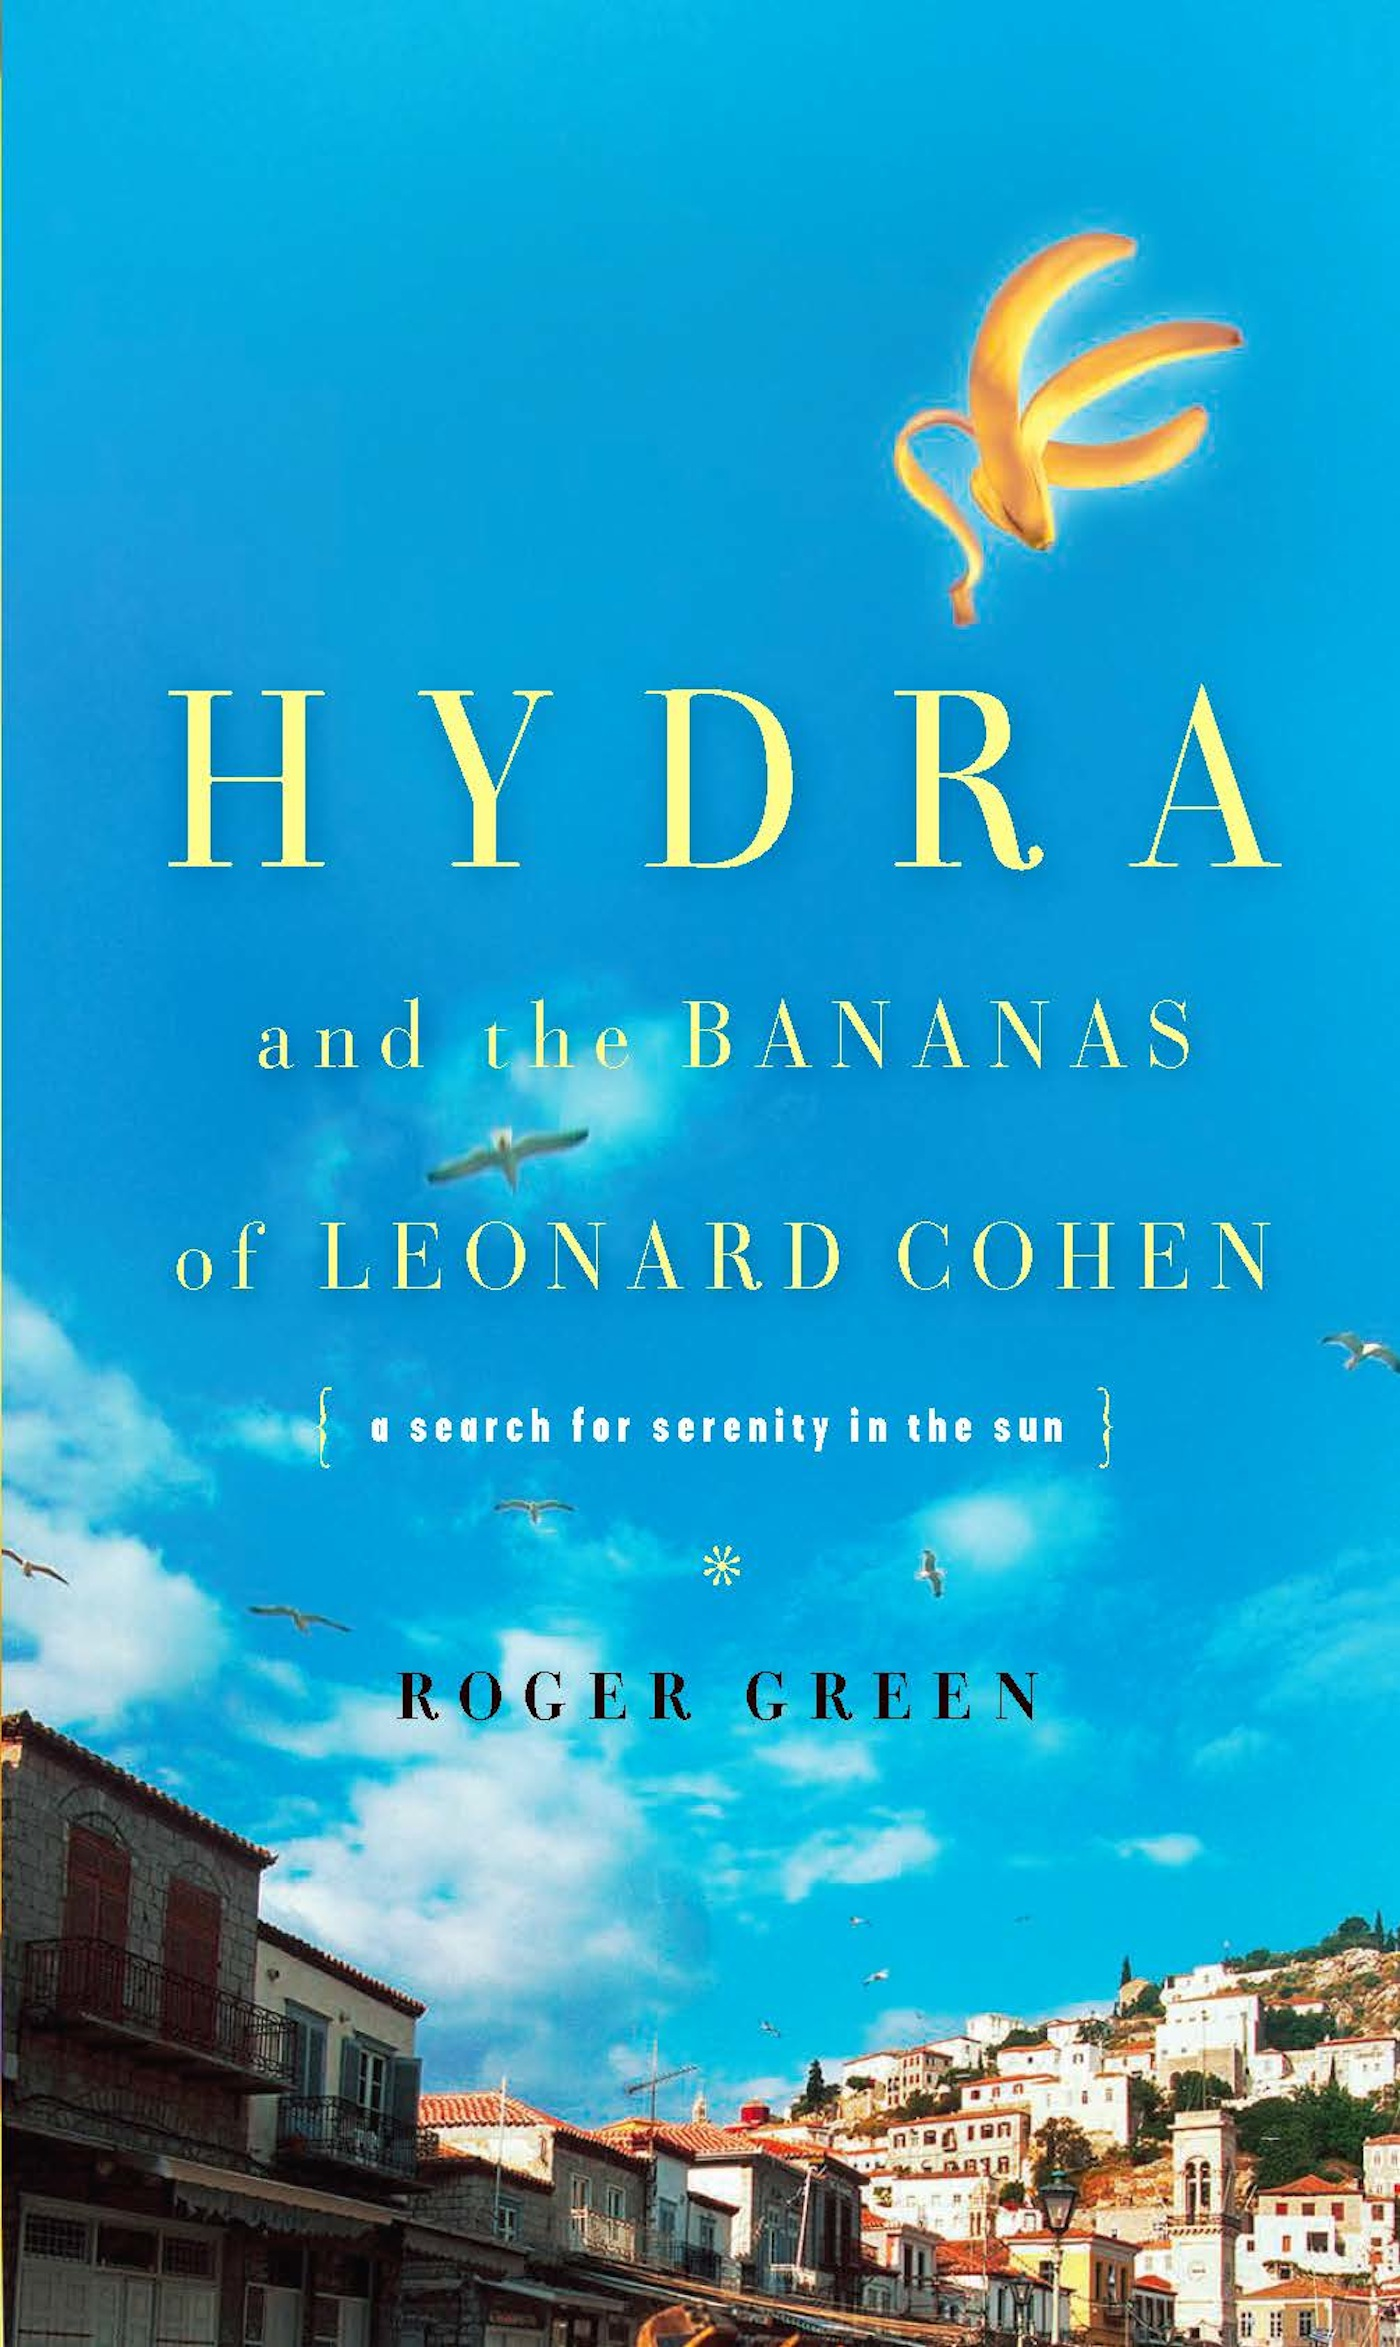 Hydra and the Bananas of Leonard Cohen